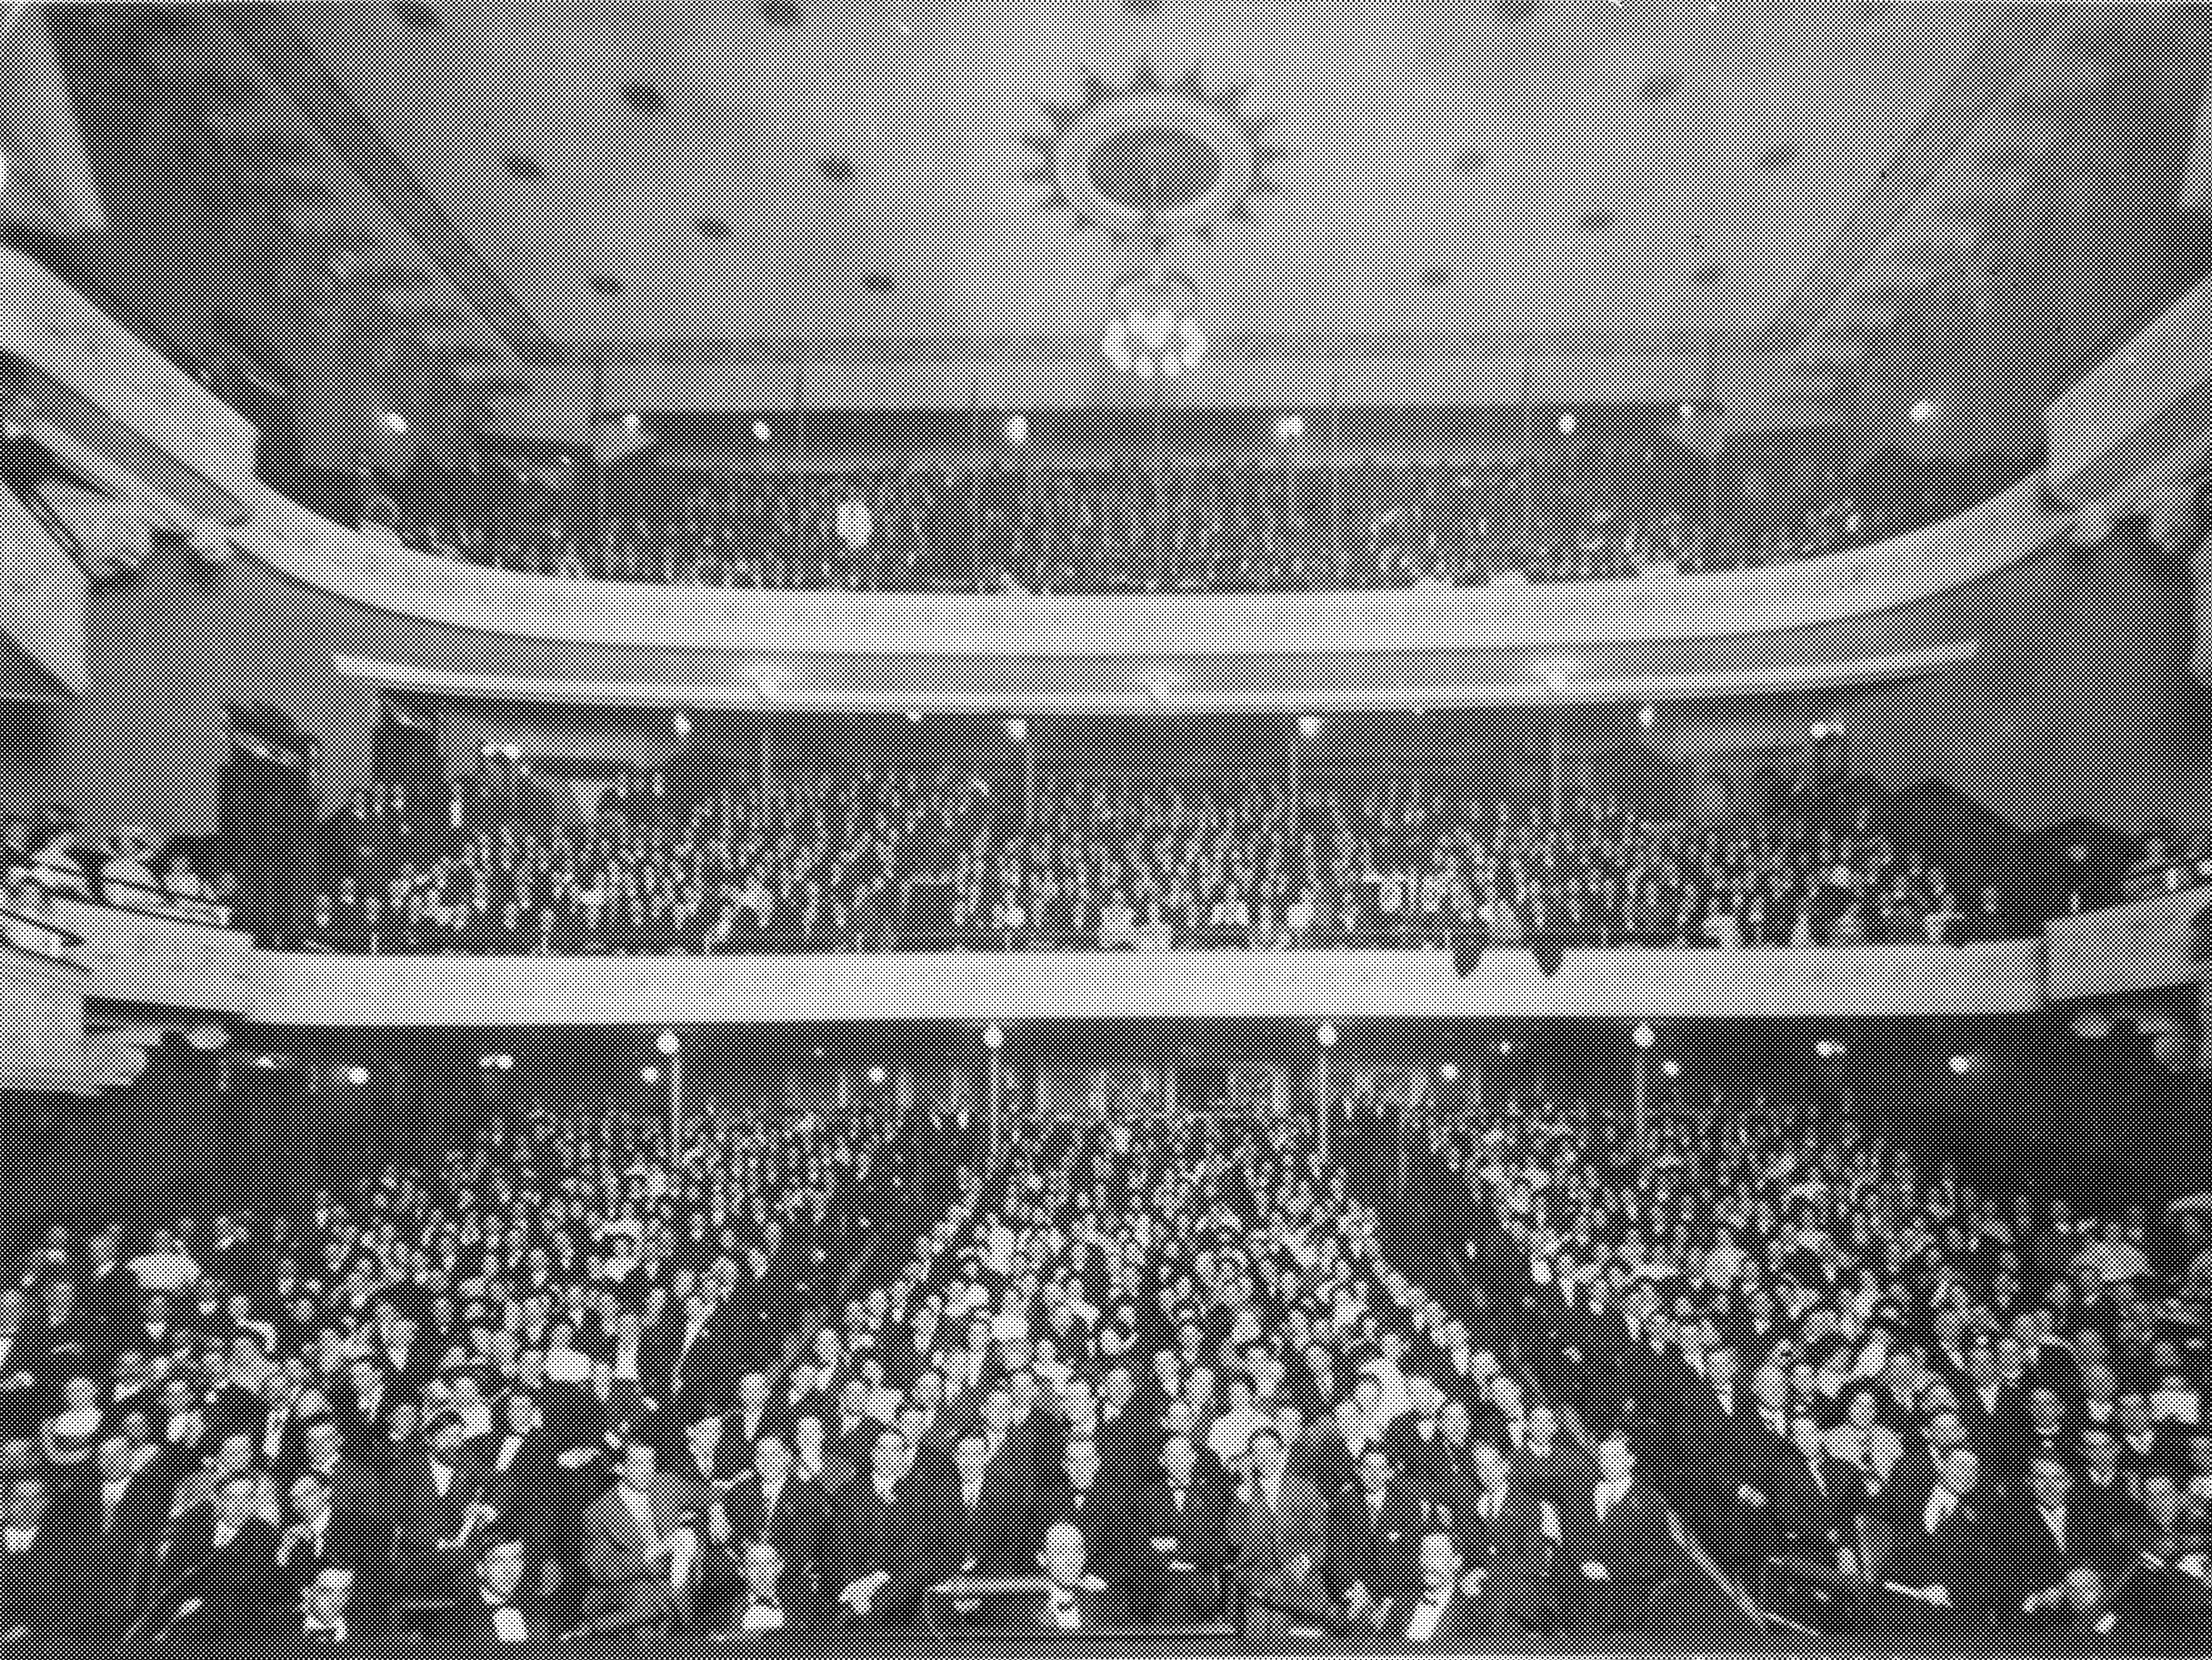 Opening day of the Bijou Theatre in 1909.